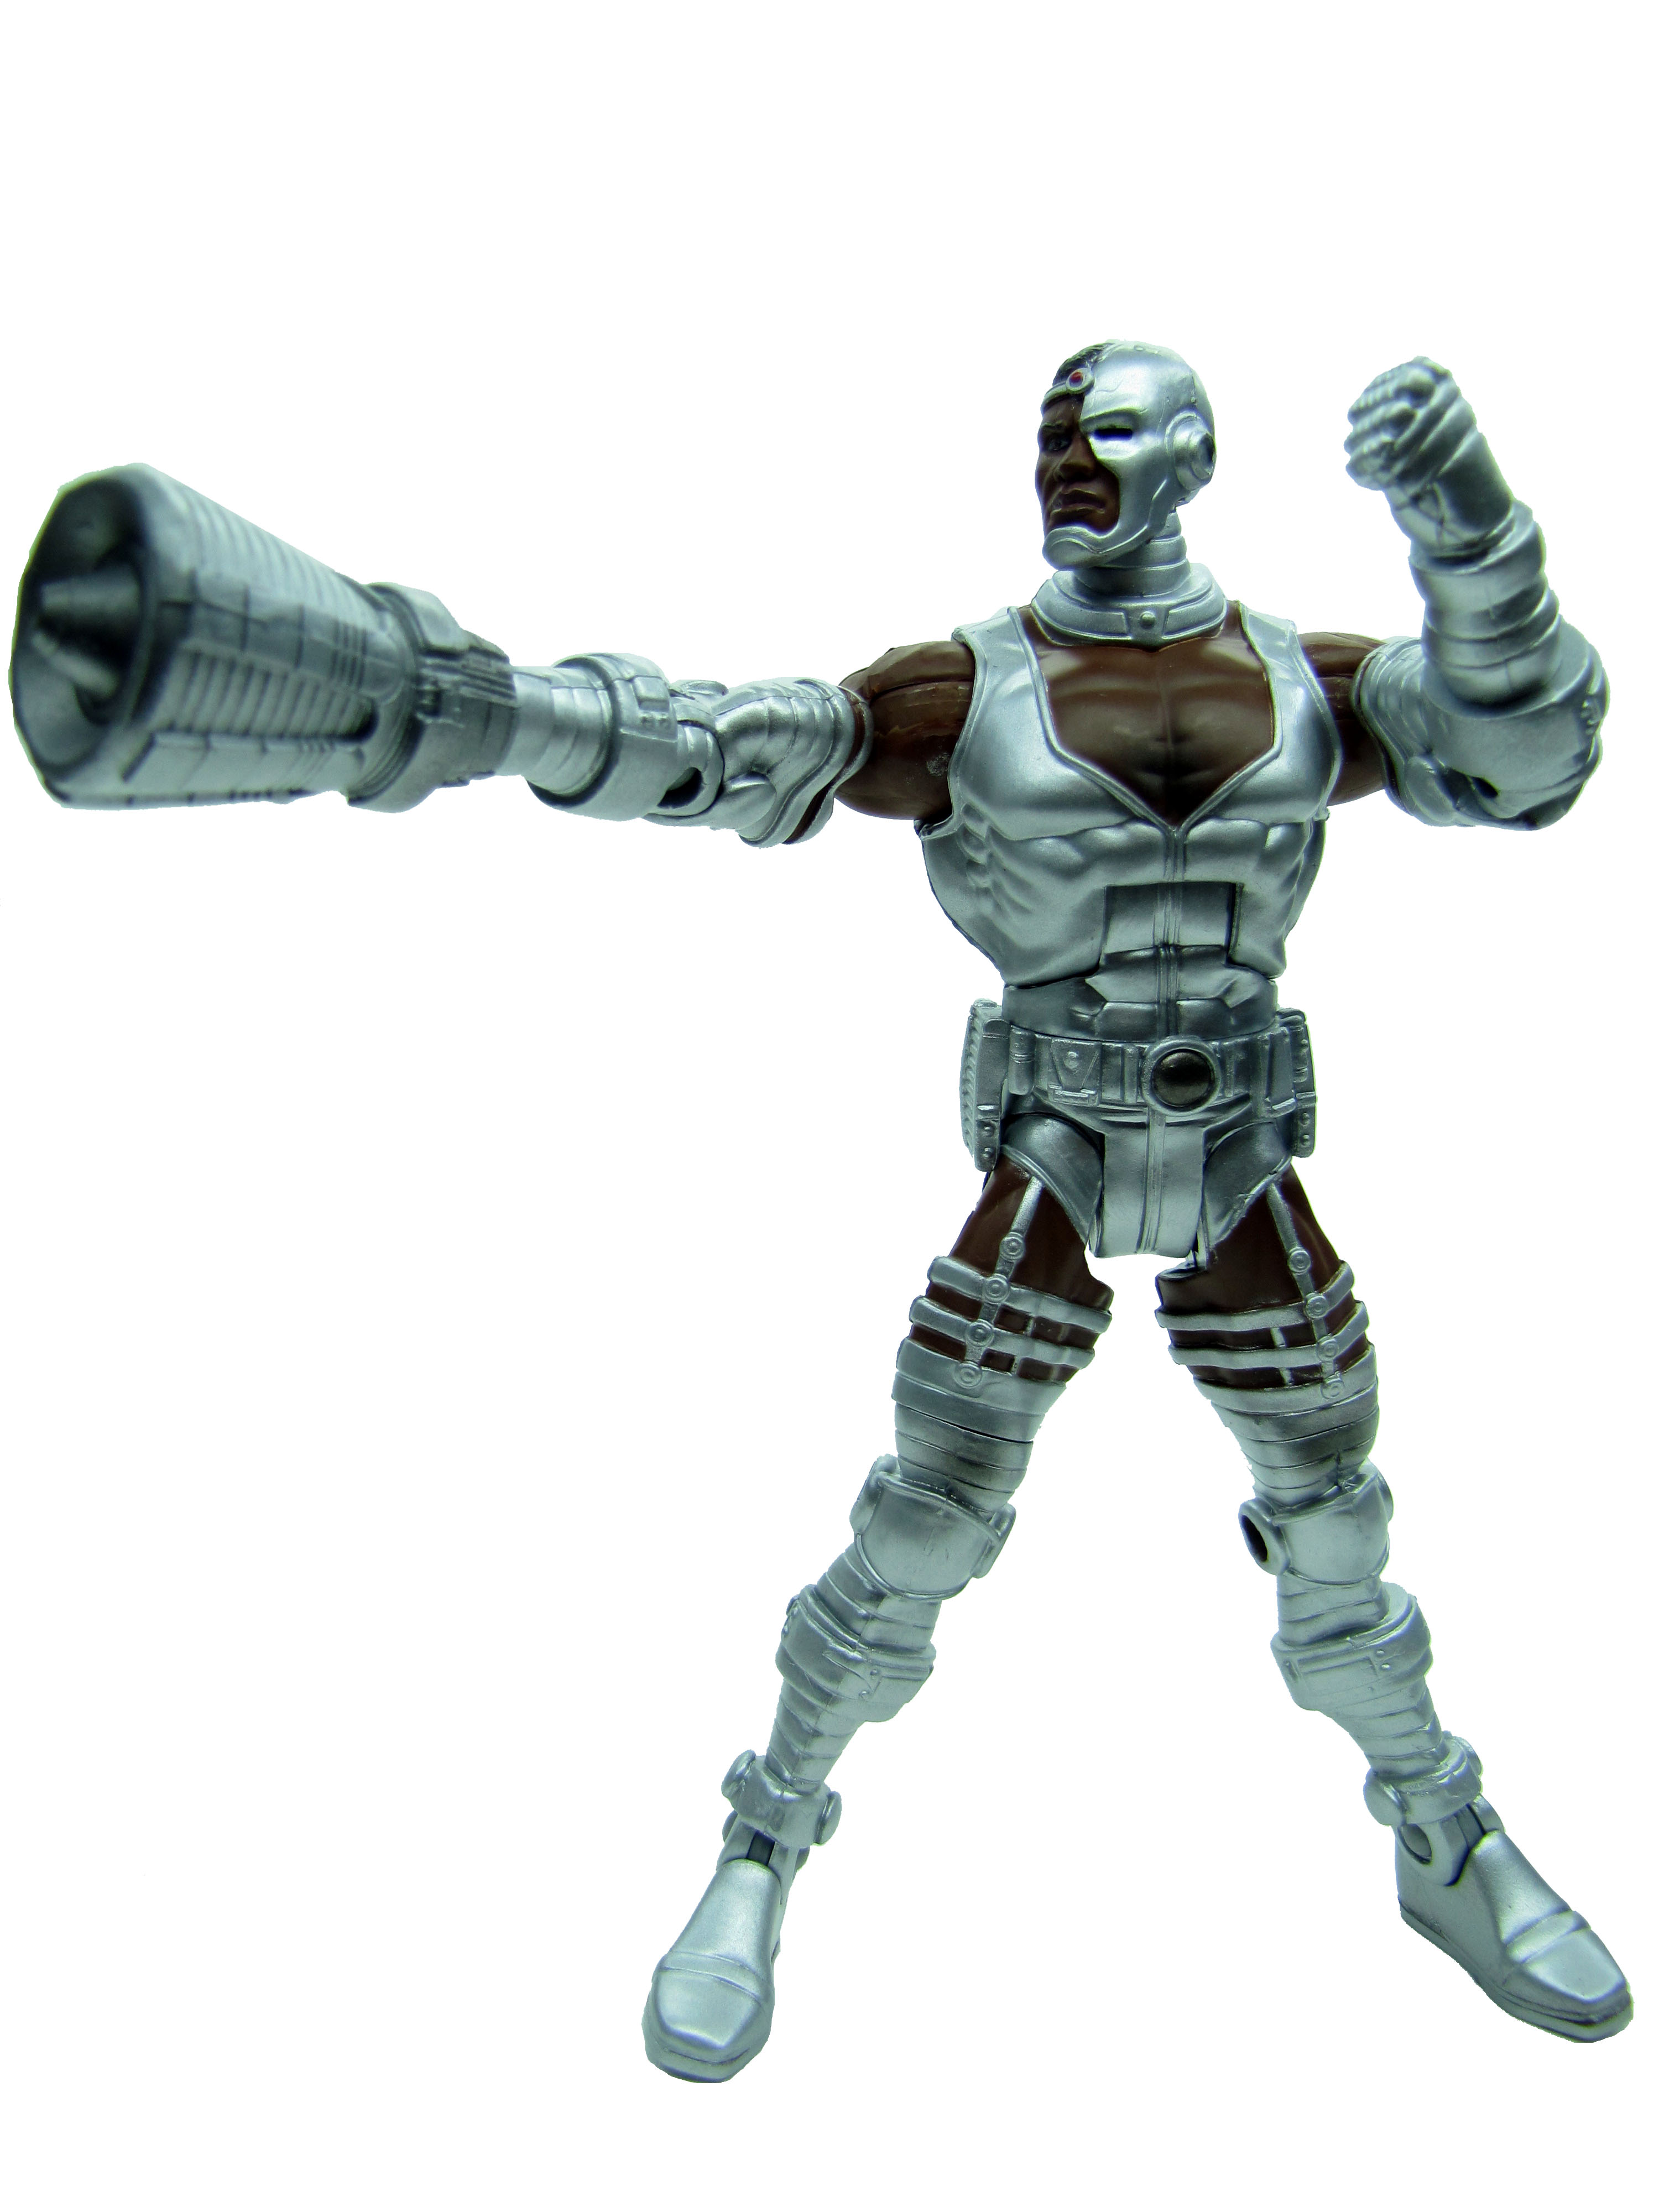 DC Universe Classics Wave 4 Cyborg Sonic Arm Variant Complete